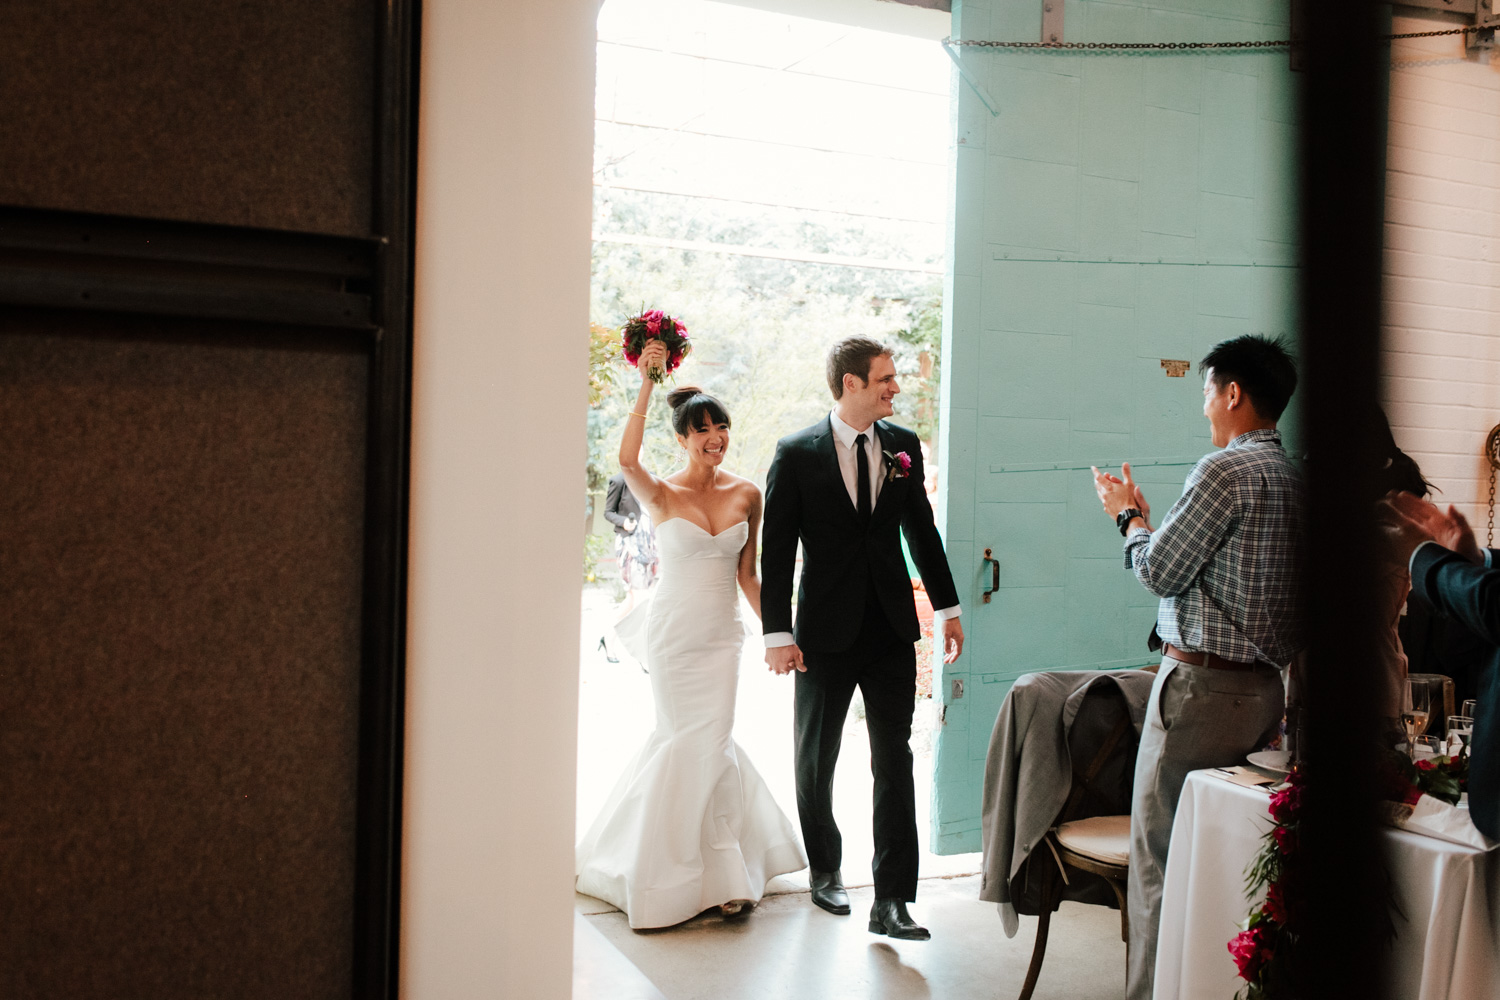 Los Angeles Wedding Photographer, The Elysian  - The Gathering Season x weareleoandkat 072.JPG